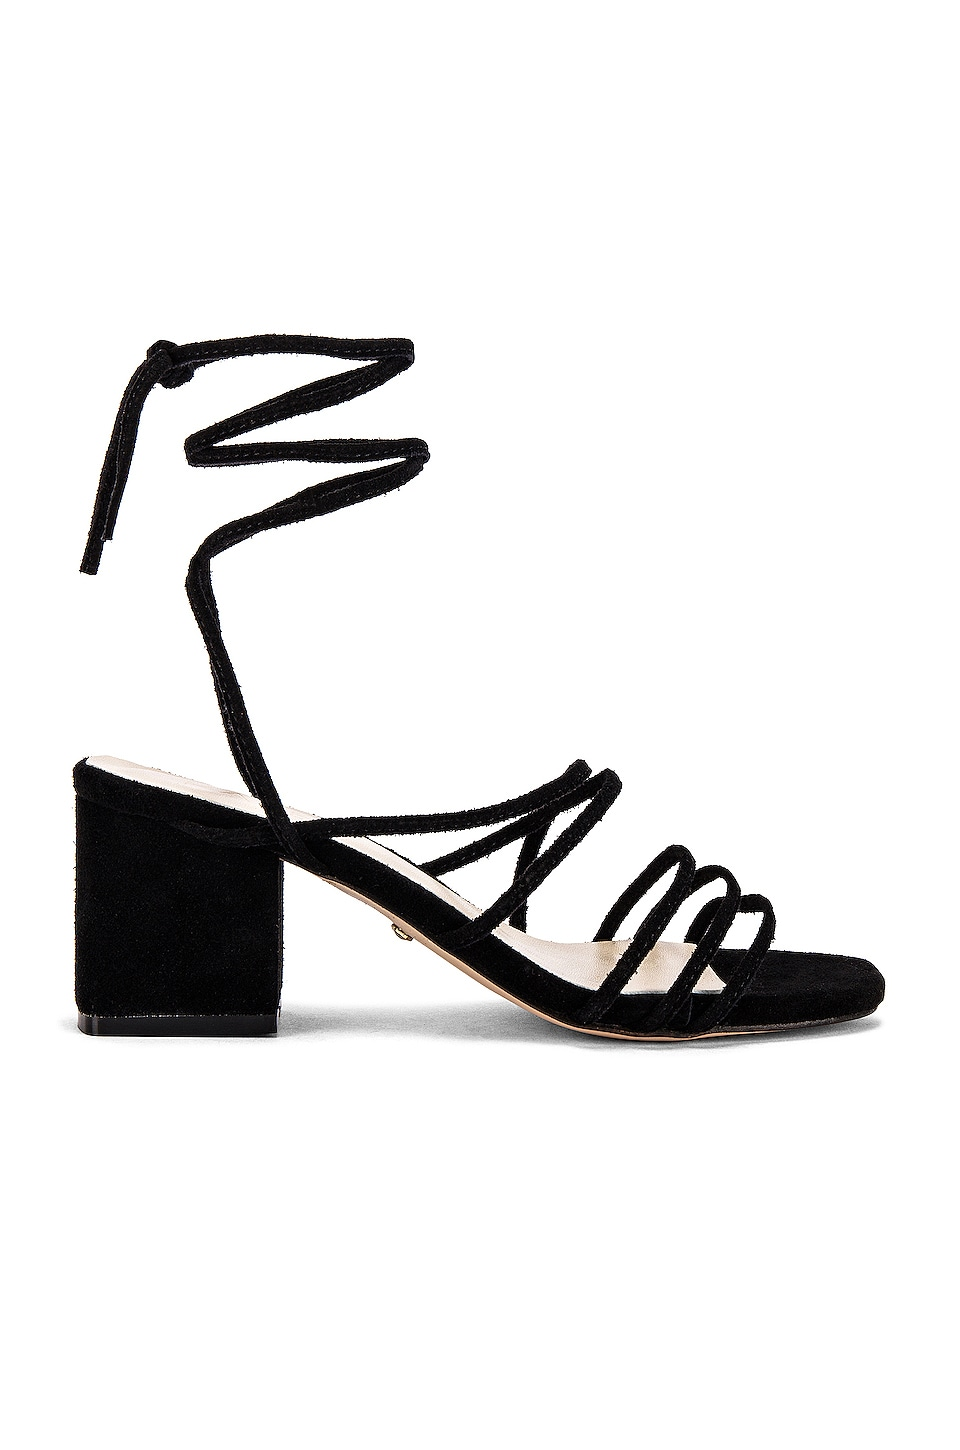 RAYE Lunar Sandal in Black